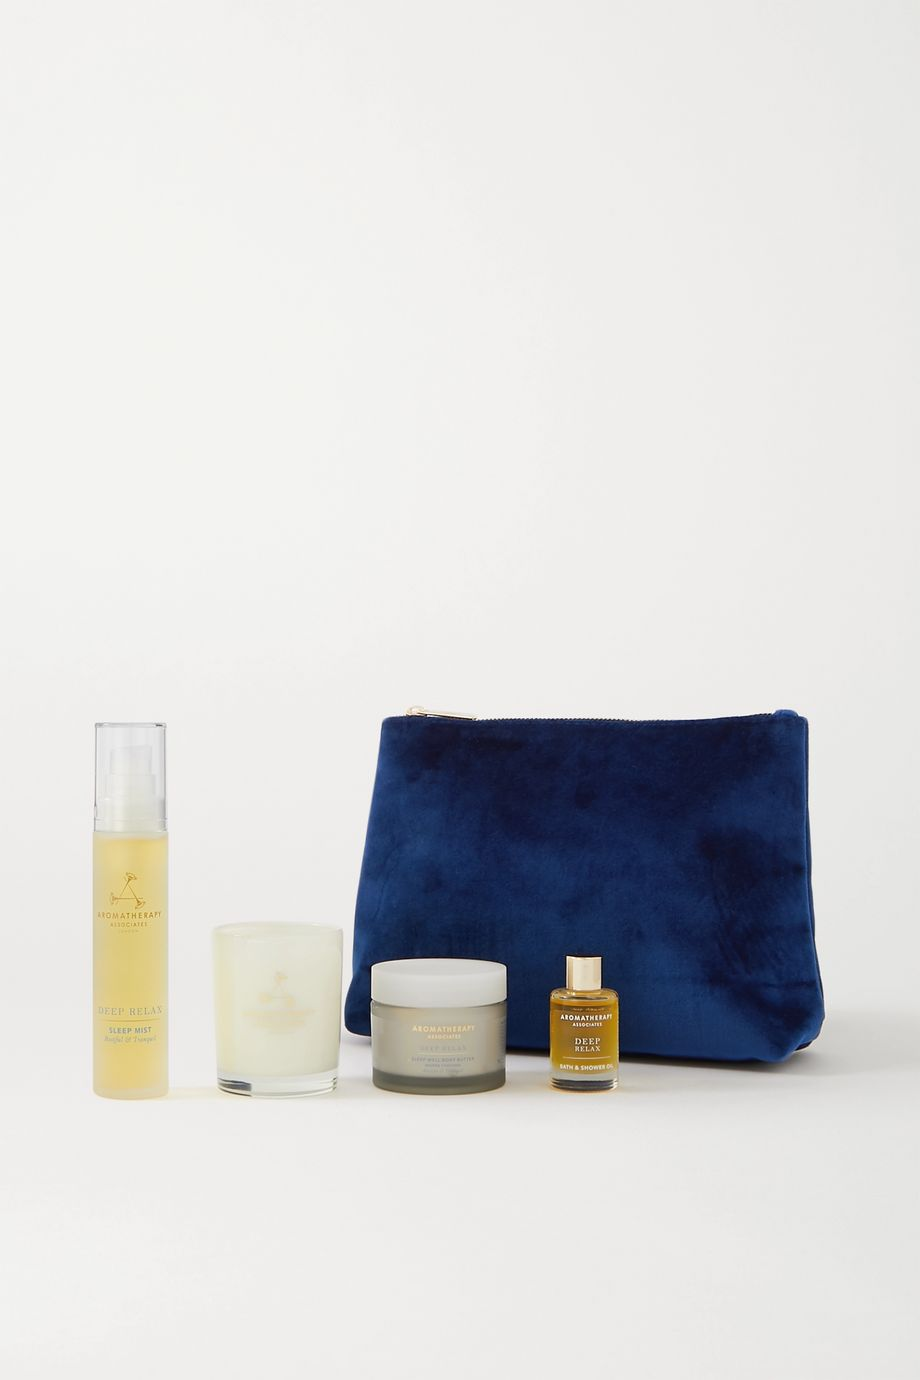 Aromatherapy Associates Moment of Restful Sleep Set – Geschenkset